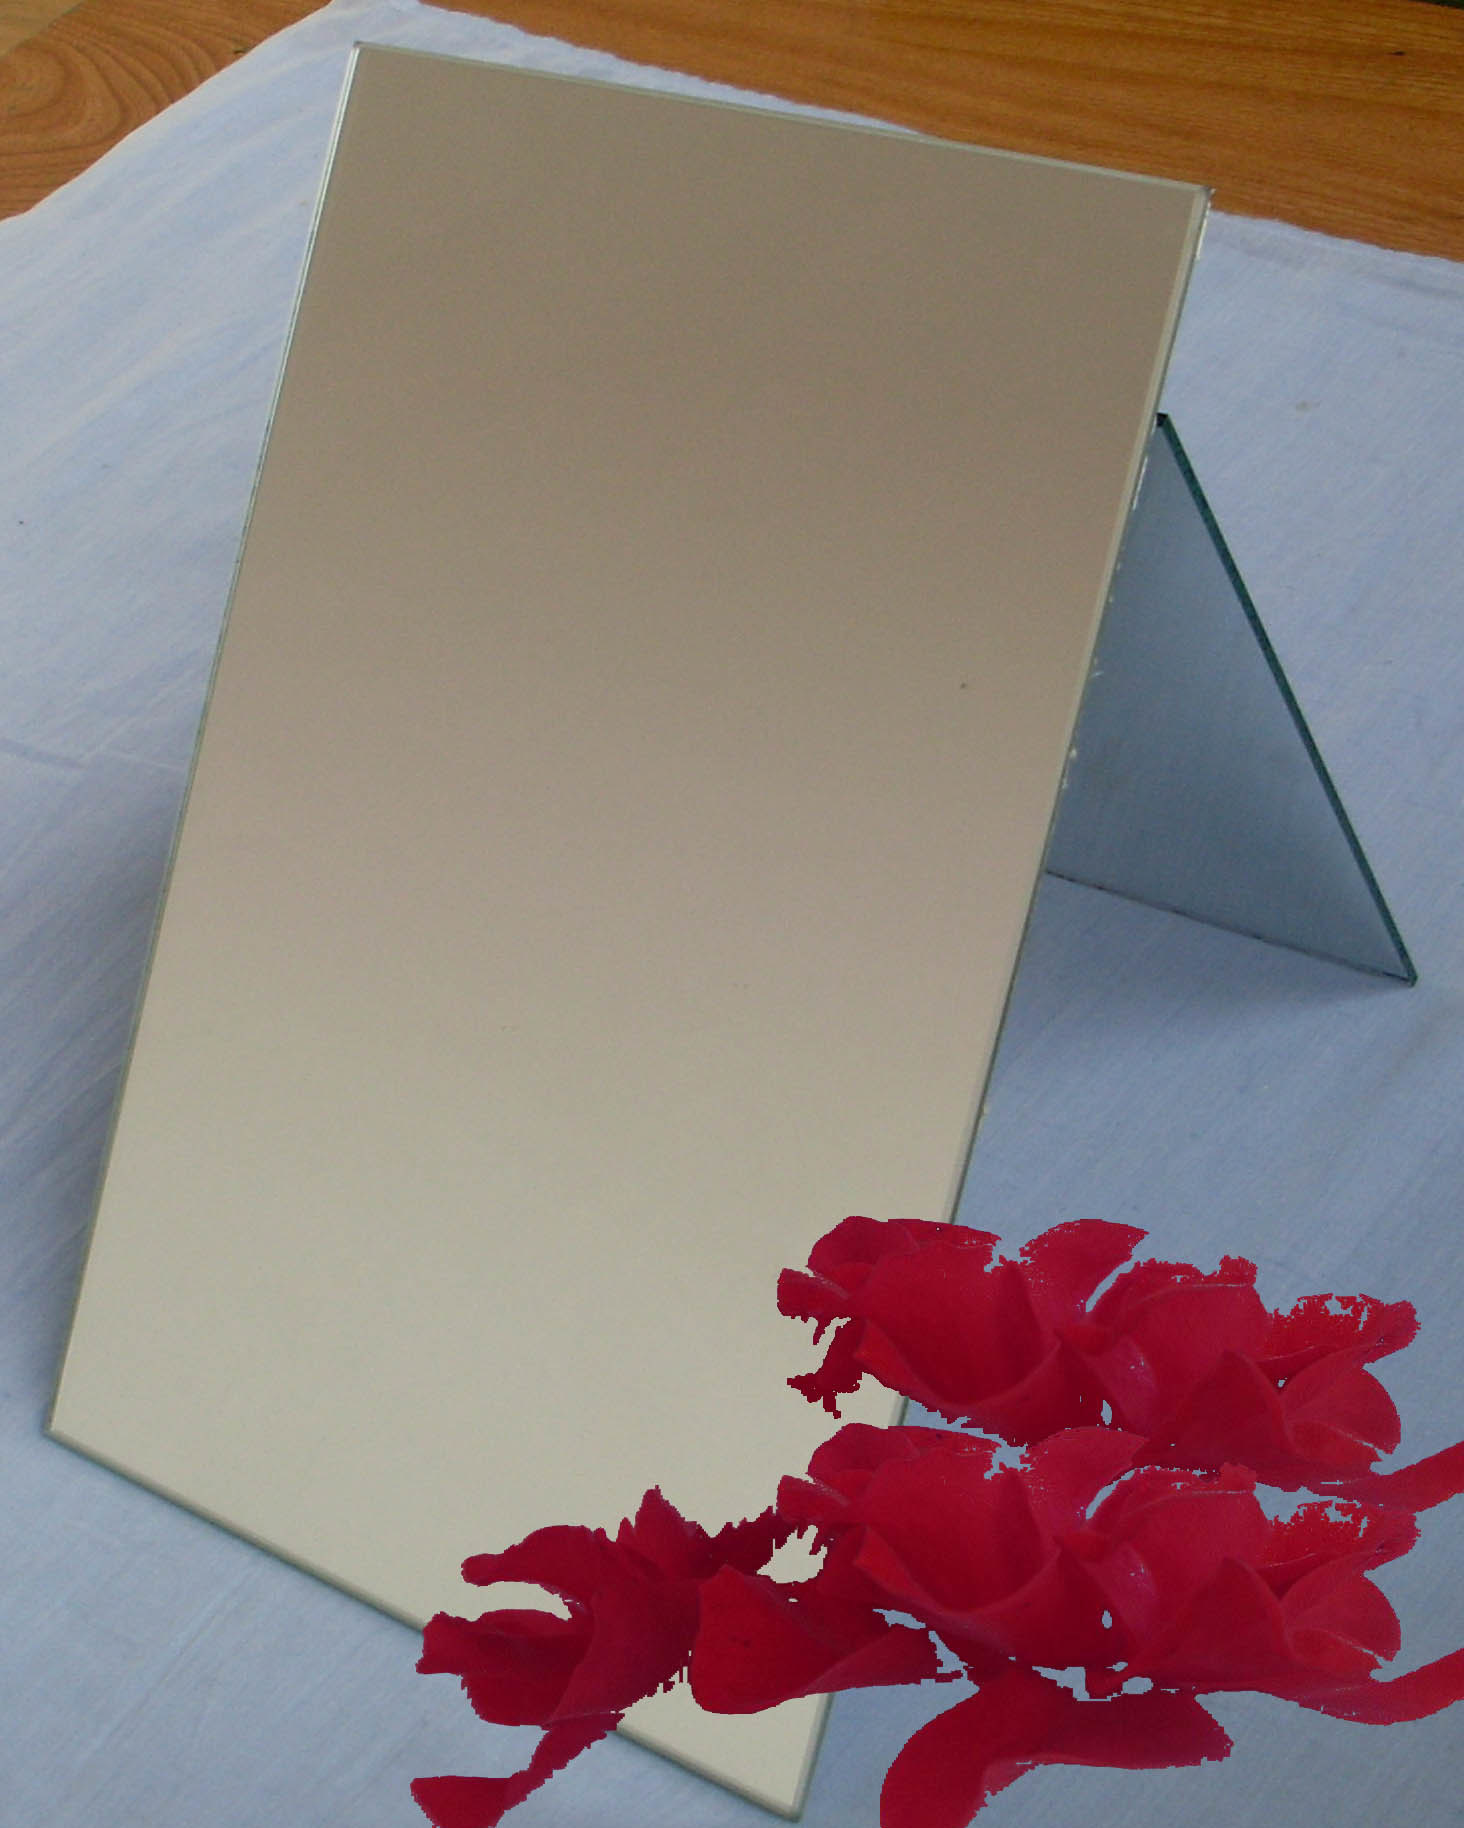 Aluminum Mirror With CAT II